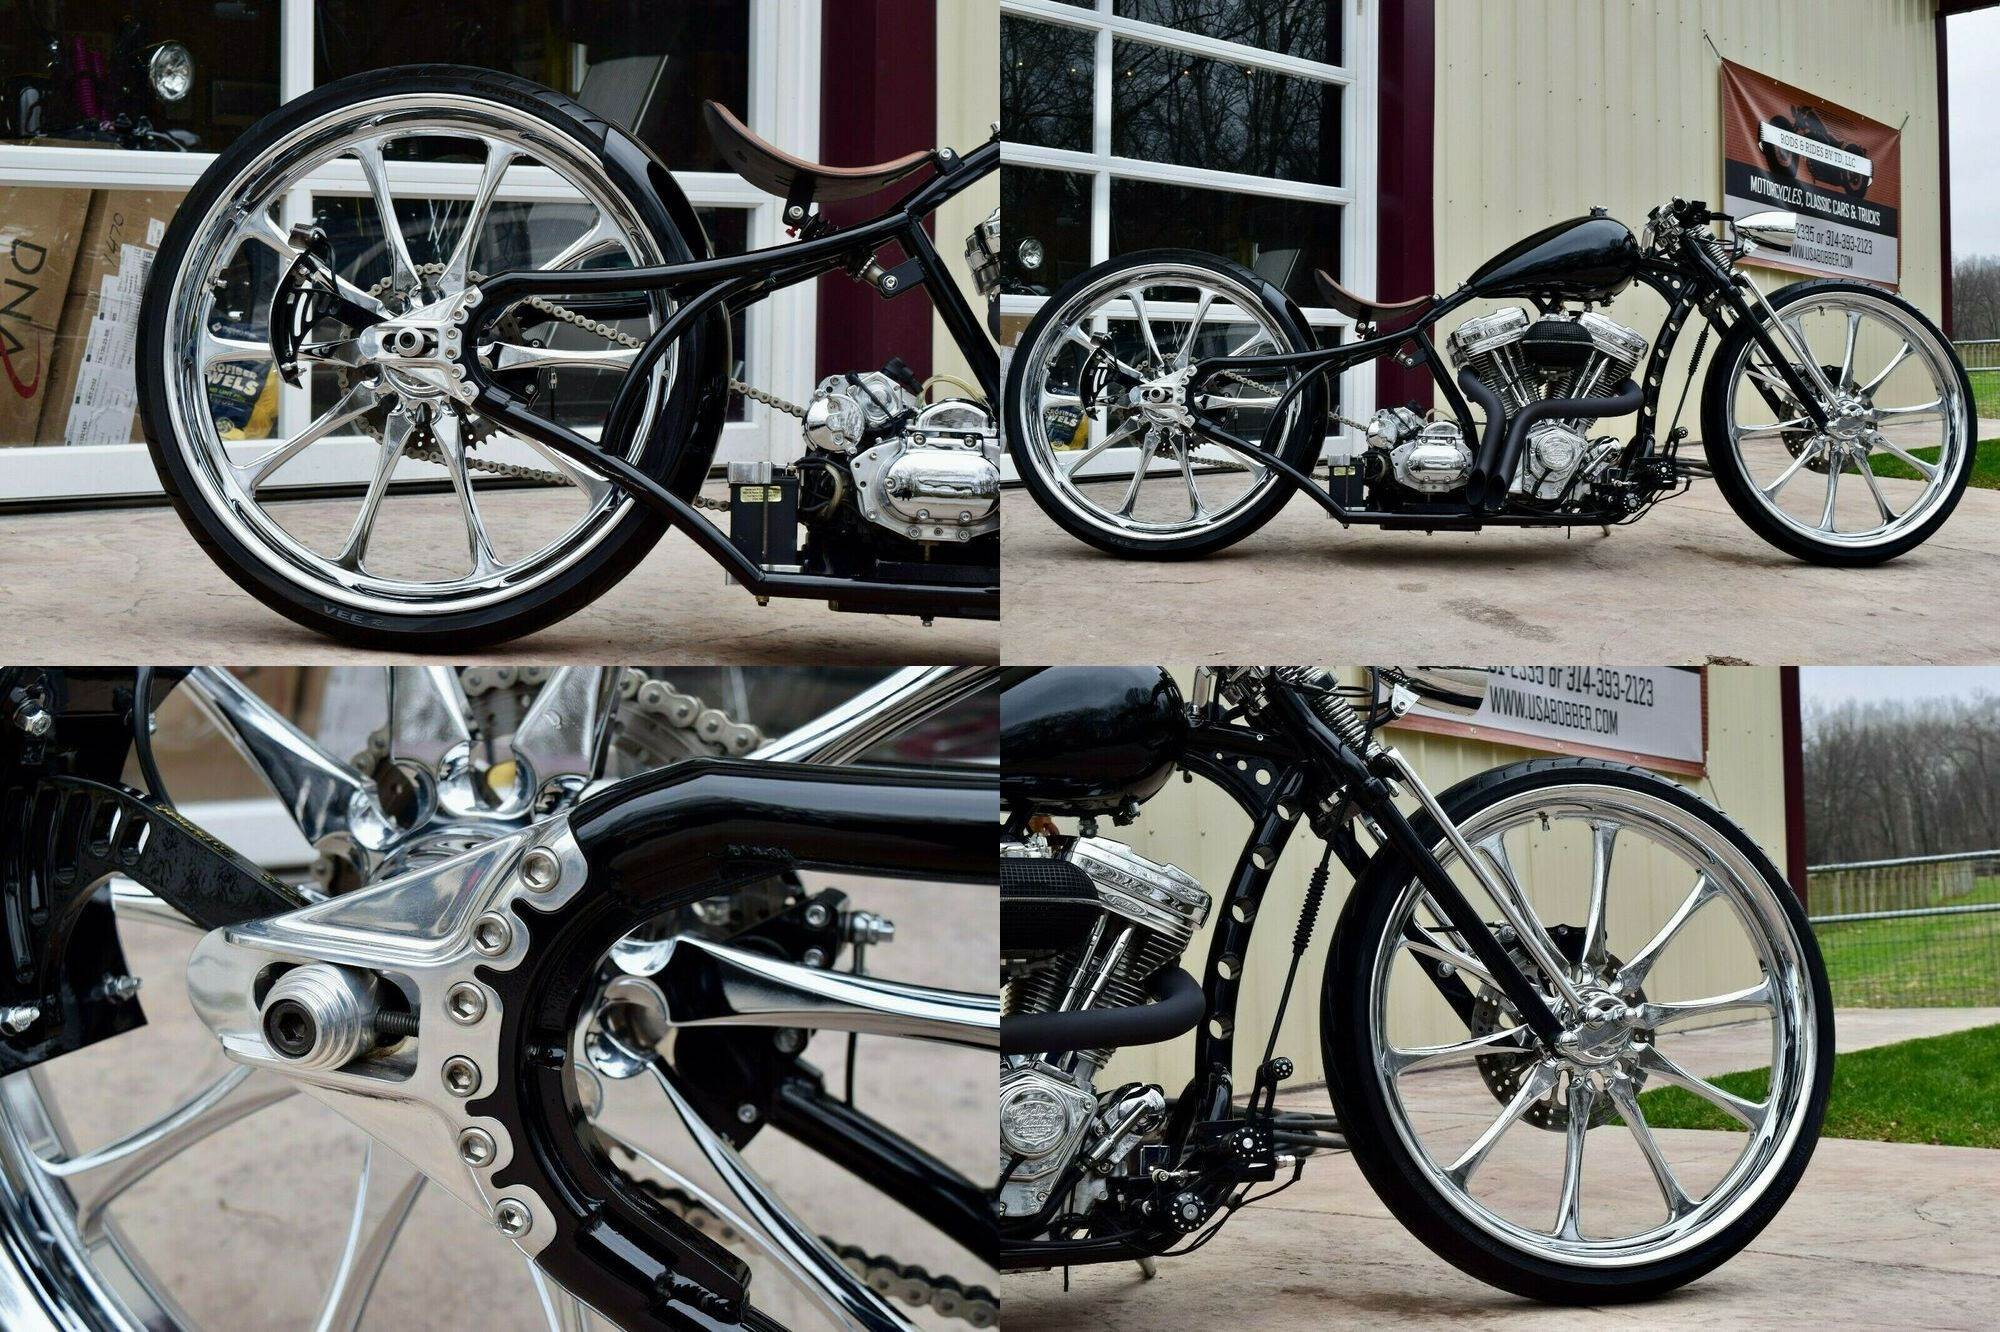 2020 Custom Built Motorcycles RODS AND RIDES BOARDTRACK RACER Black used for sale craigslist